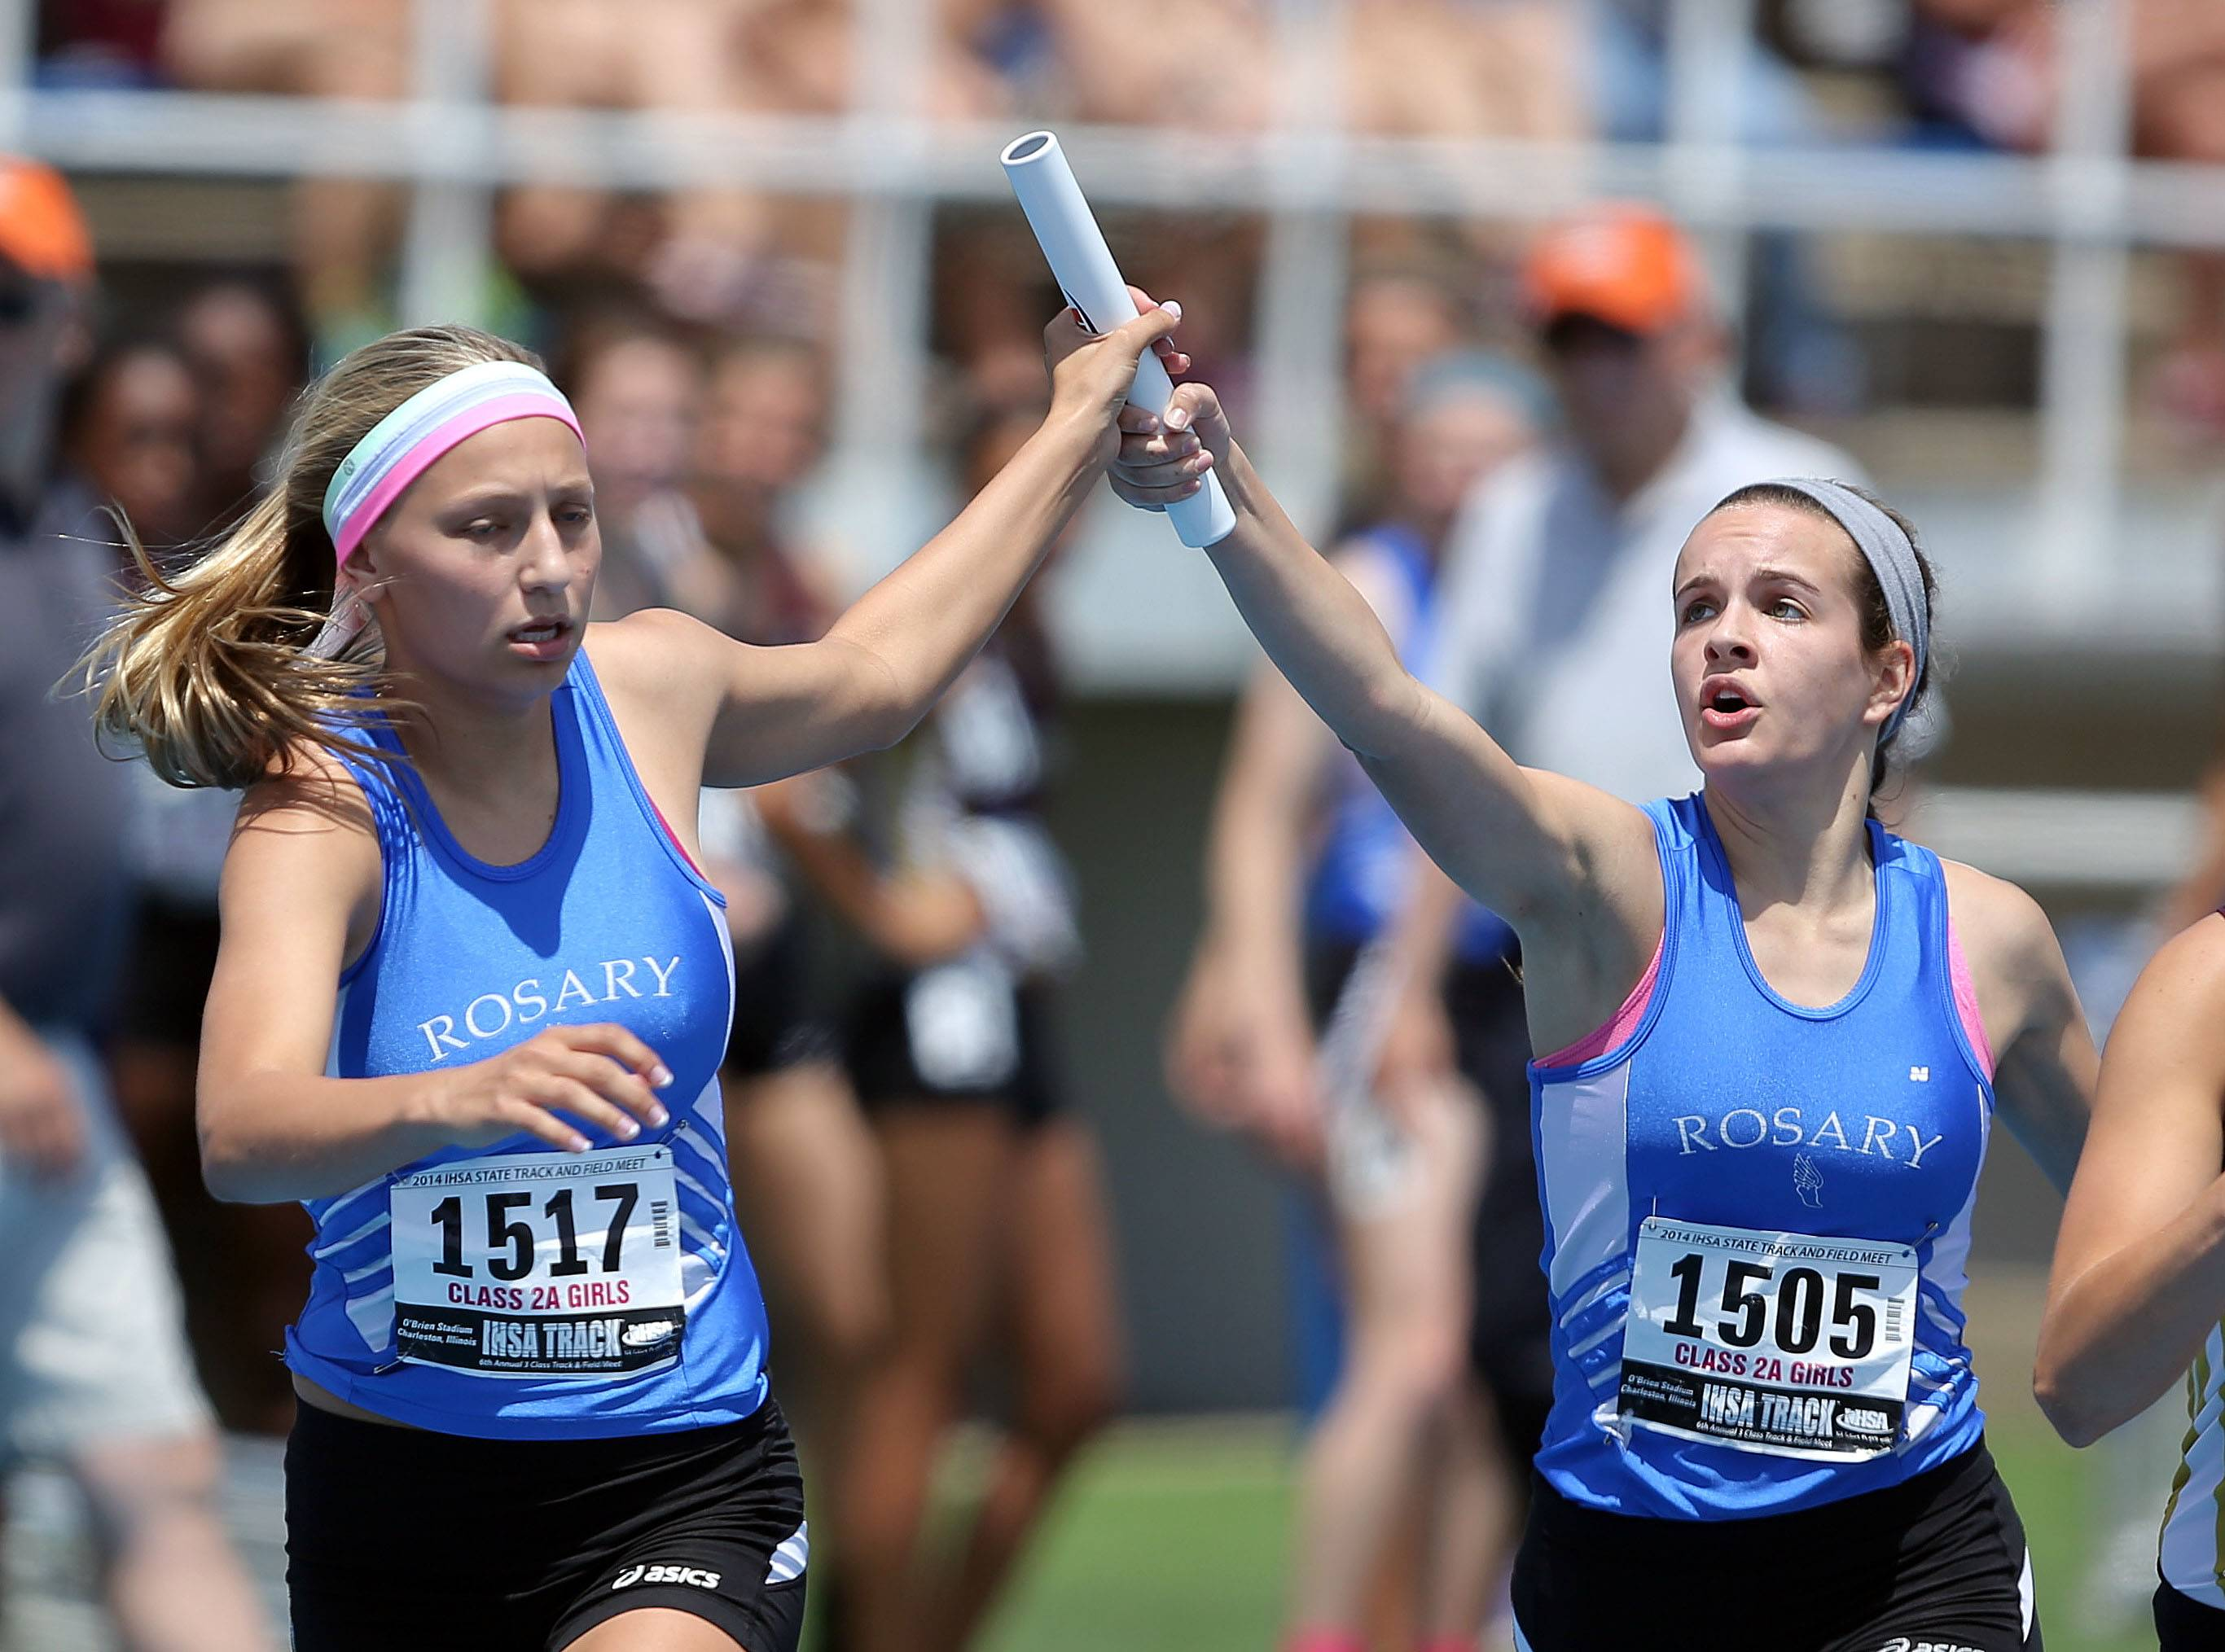 Rosary's Molly Stefanski, left, takes the baton from Emily Bakala in the 4x400-meter relay in Class 2A.